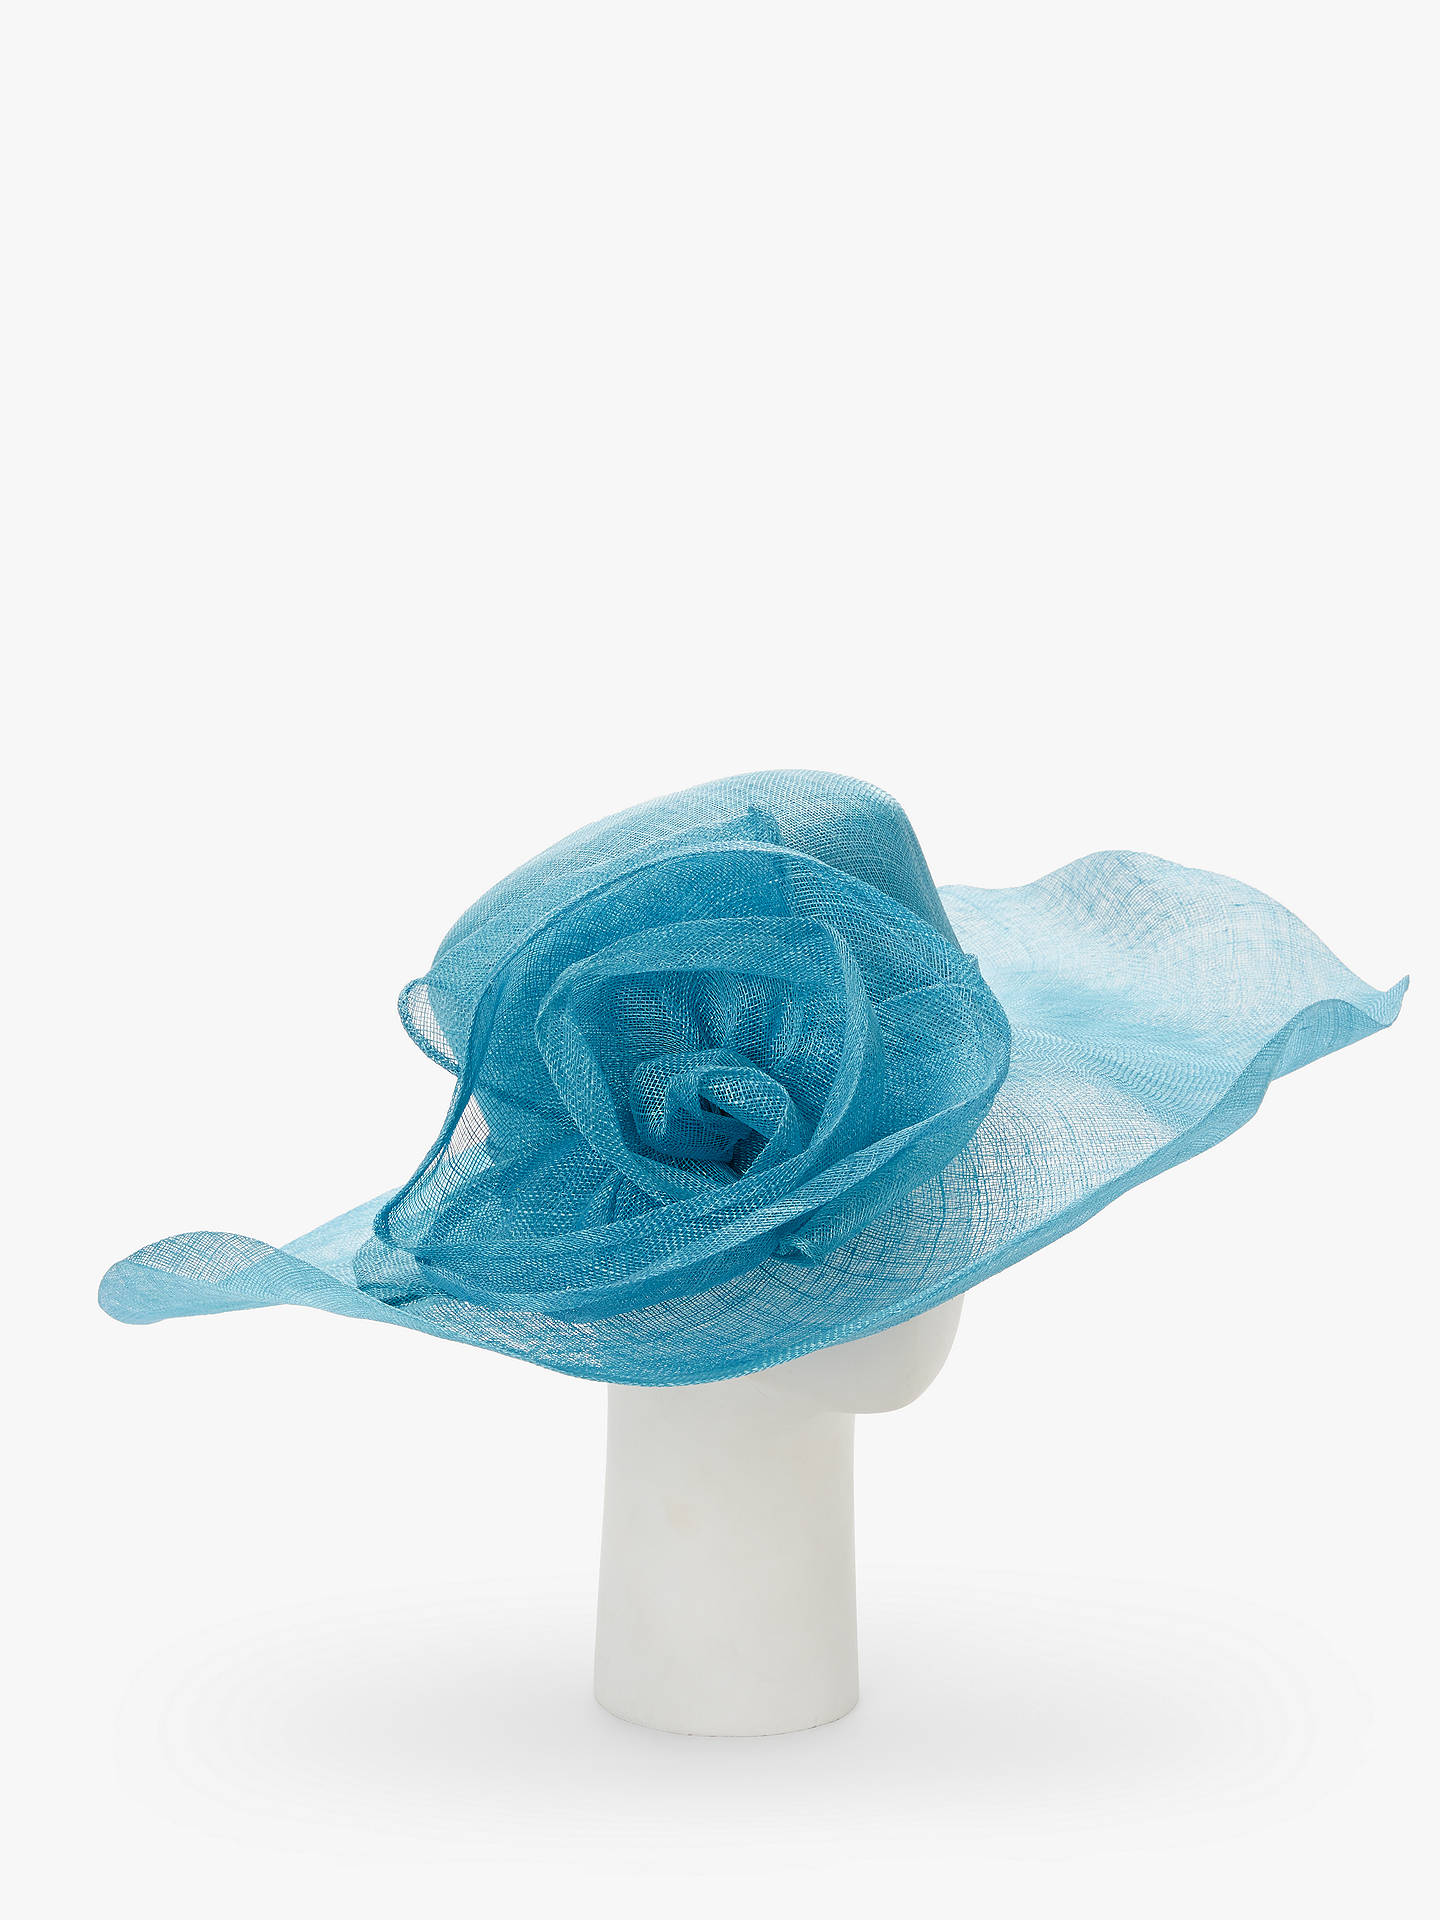 15d832bea0d66 ... Buy Suzanne Bettley Coco Wave Brim Occasion Hat